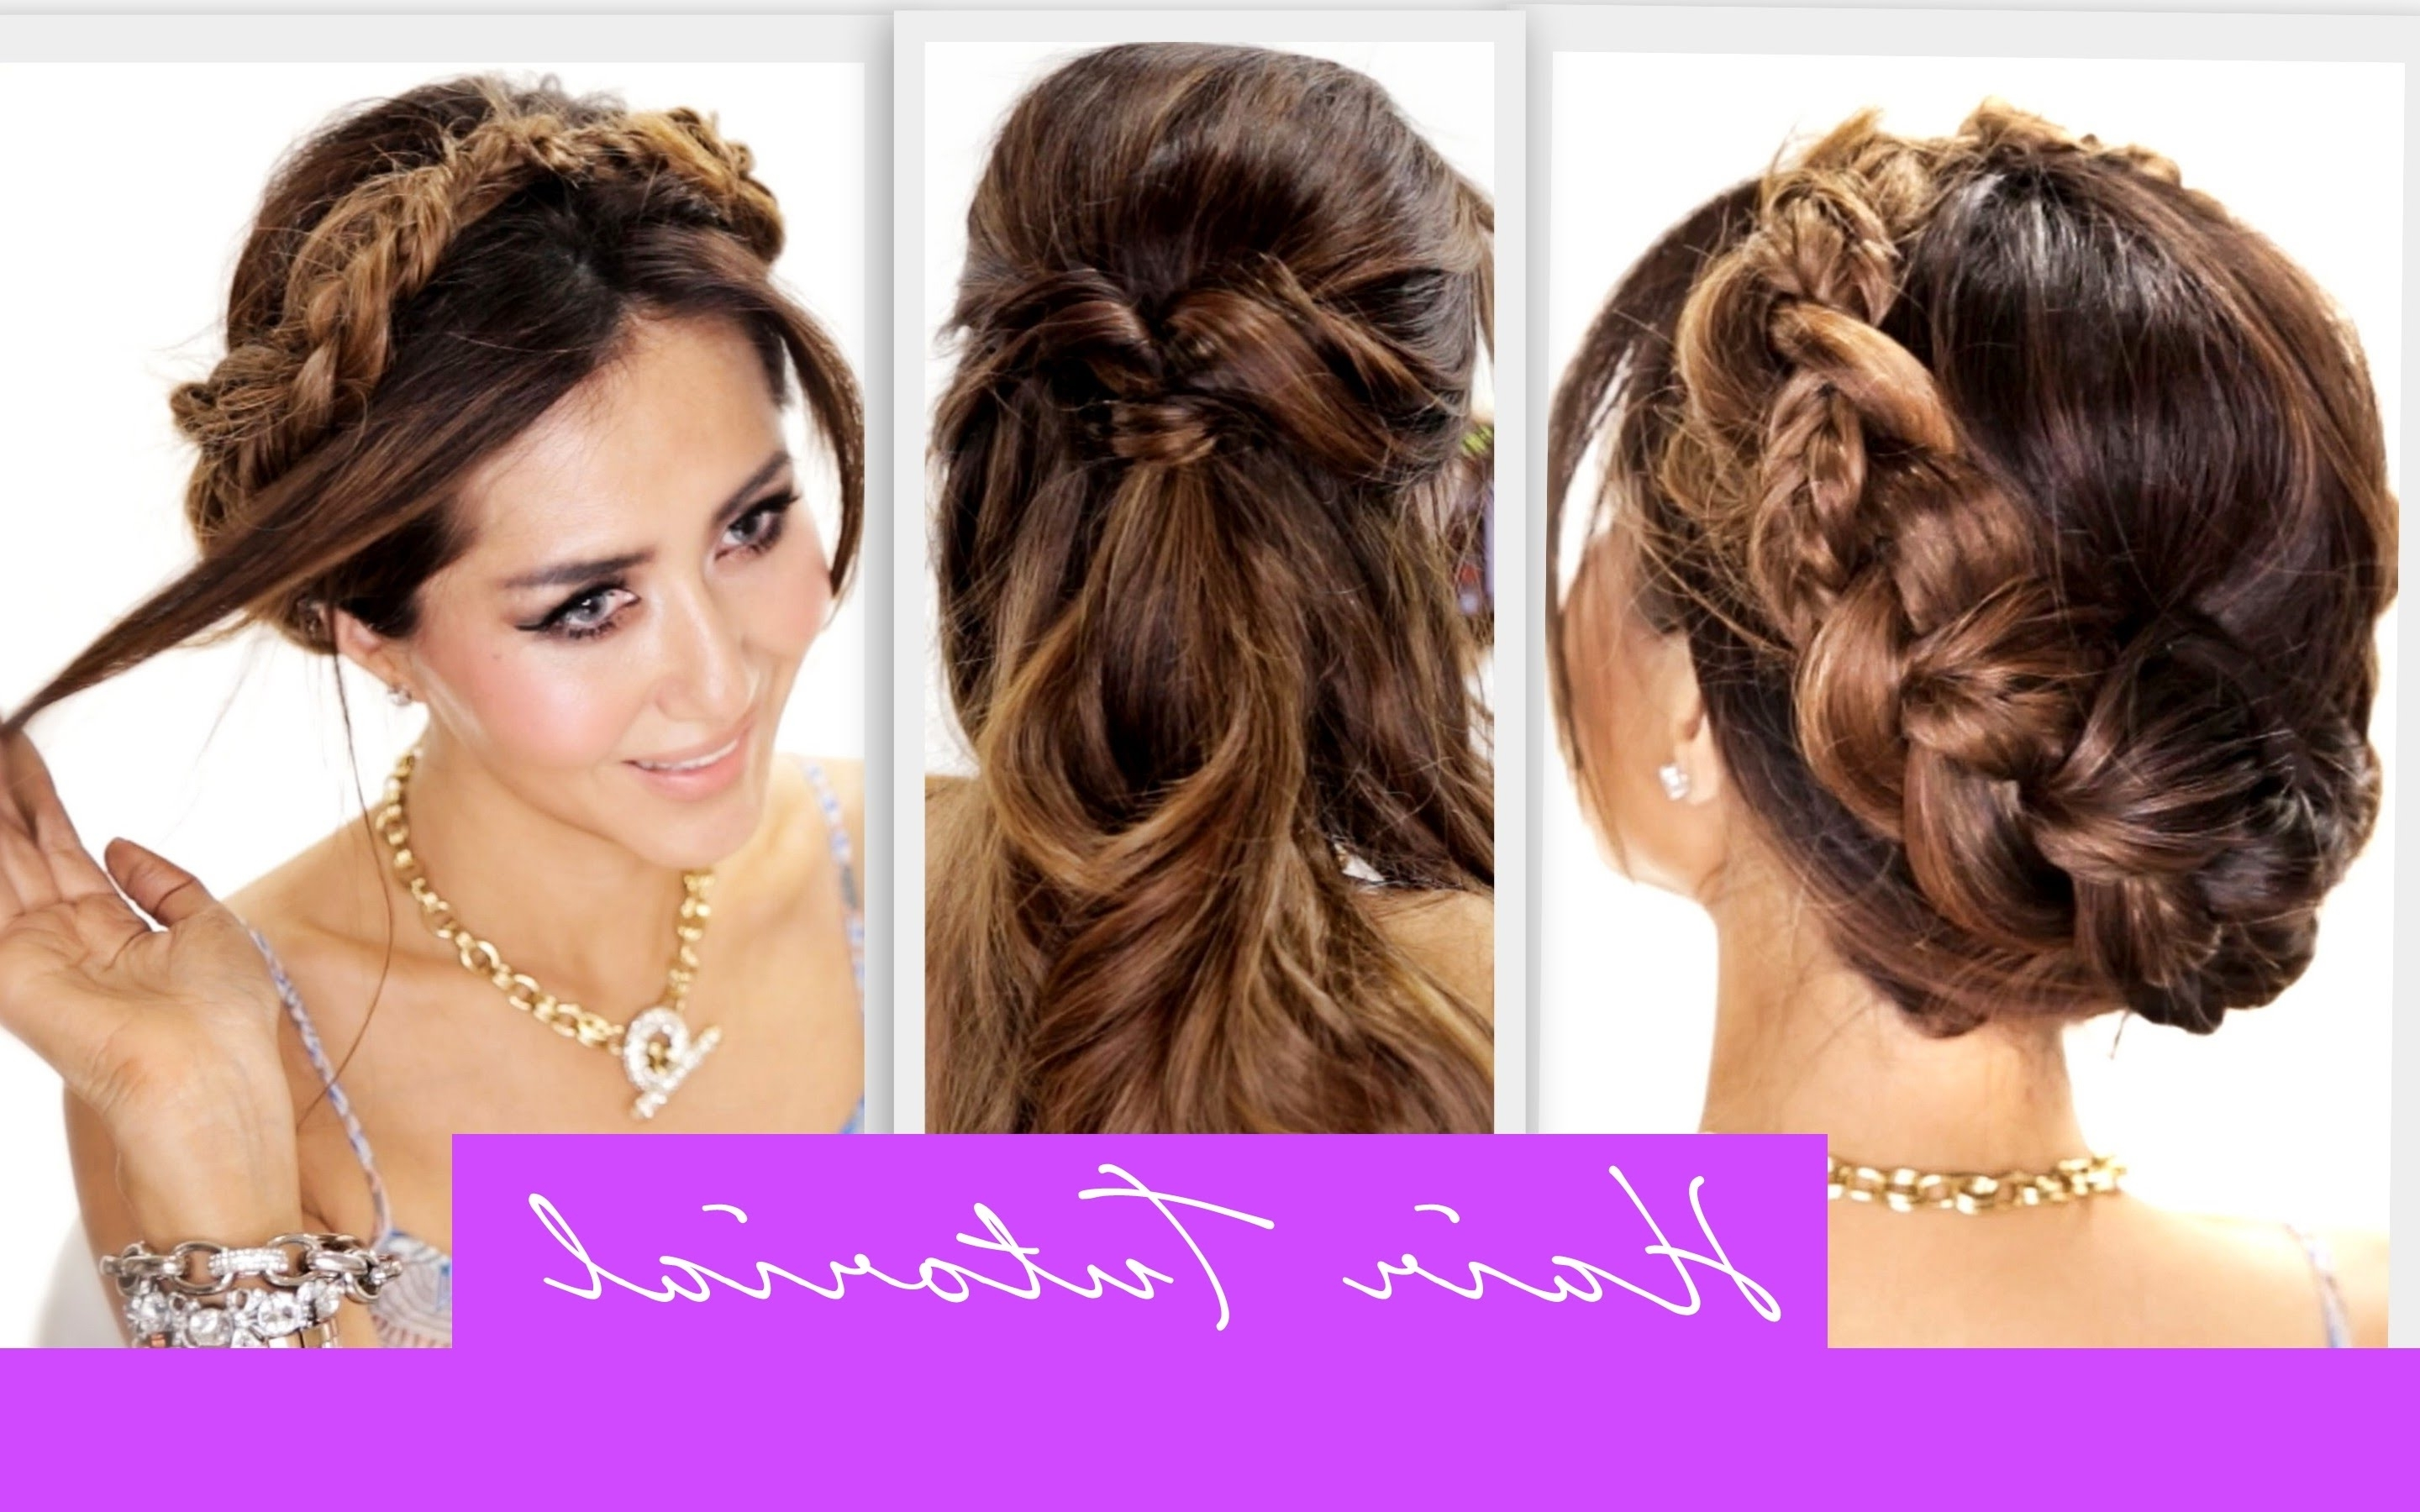 Cute Braids Hairstyle Regarding Favorite Hidden Braid Hairstyles (View 16 of 20)